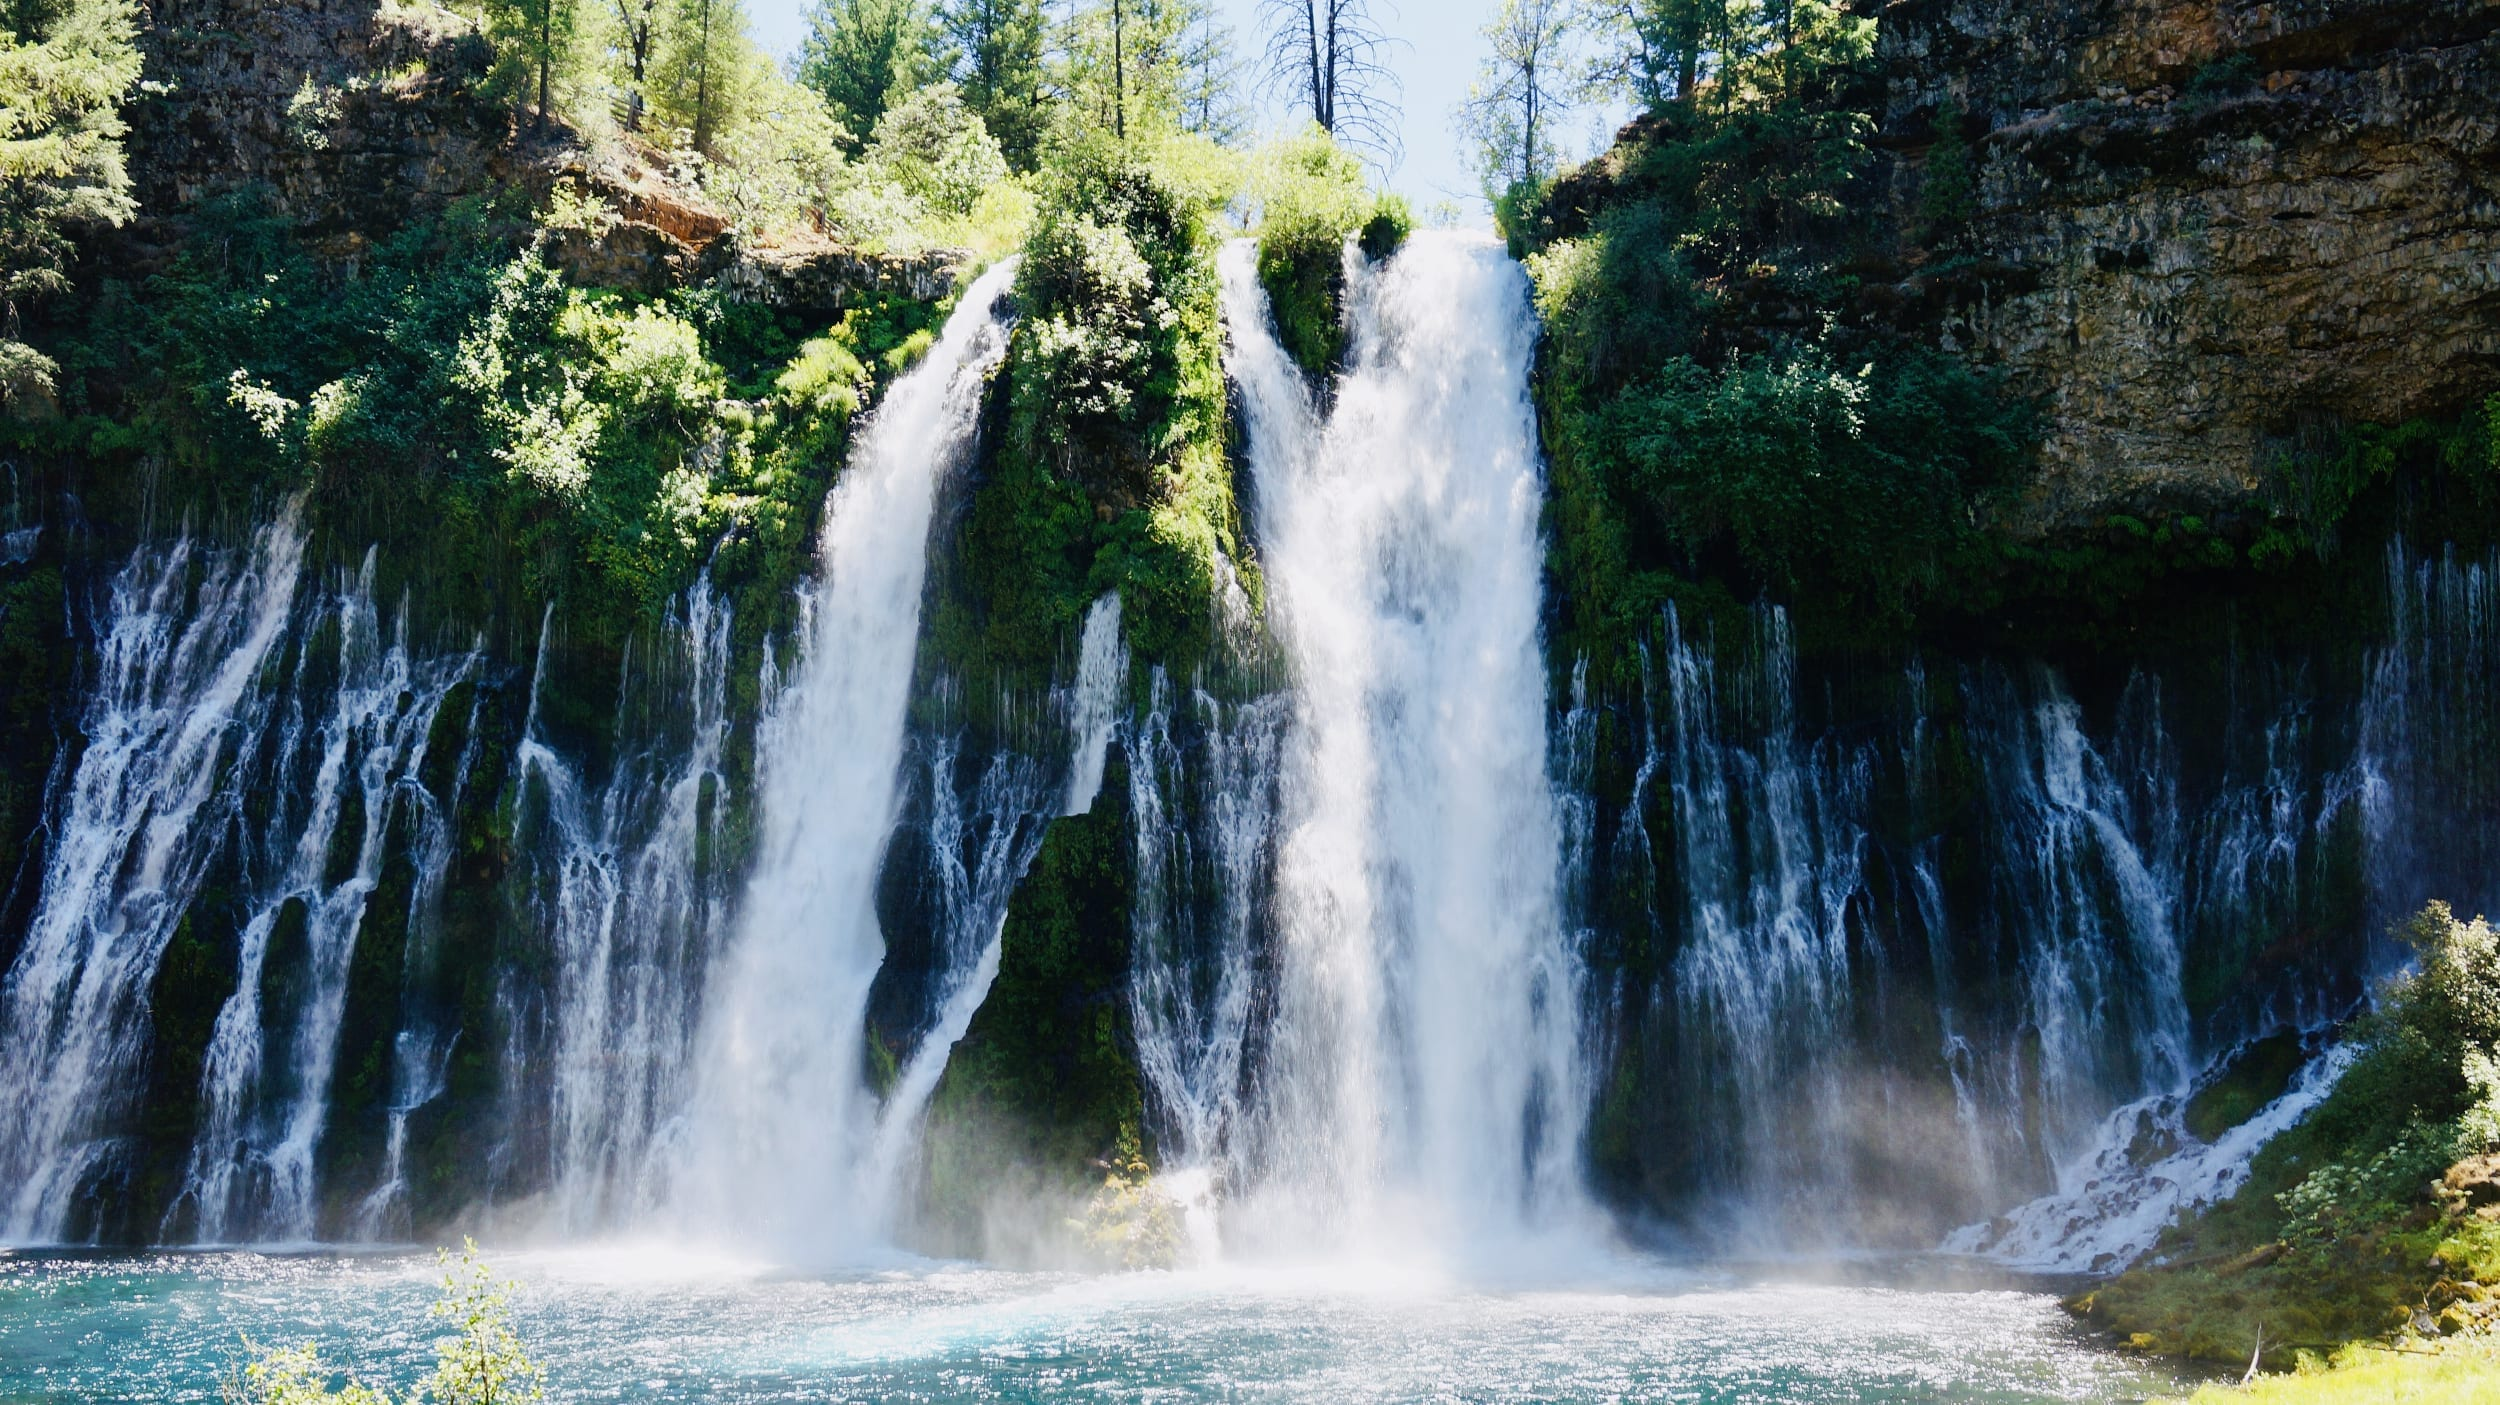 Burney Falls and Camping with Kids at Lassen Volcanic National Park (Day 1 of 3)